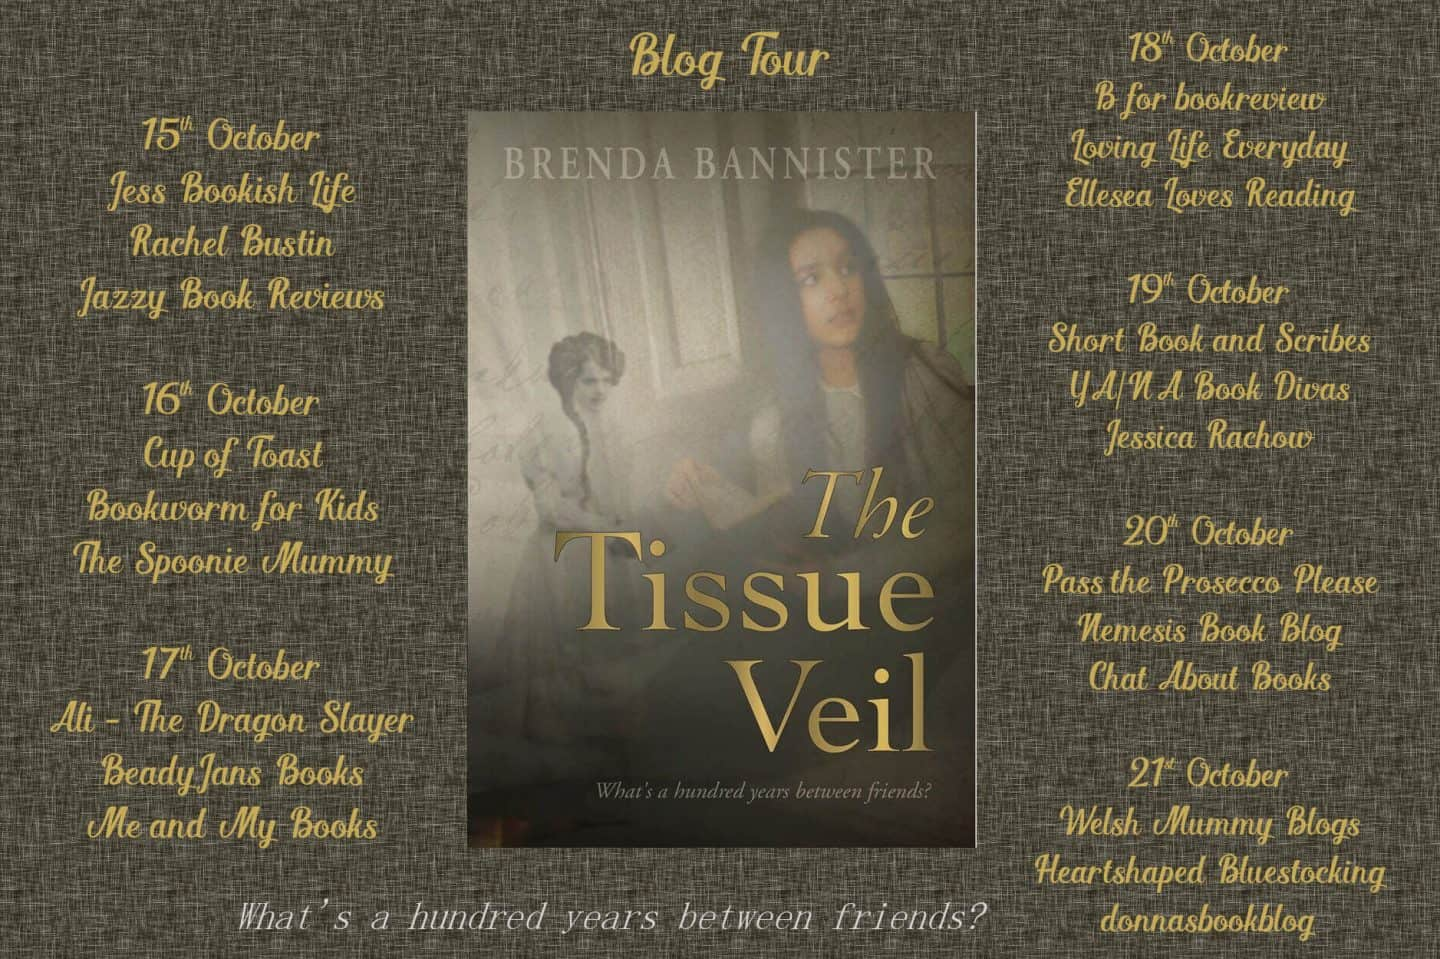 The Tissue Veil Full Tour Banner